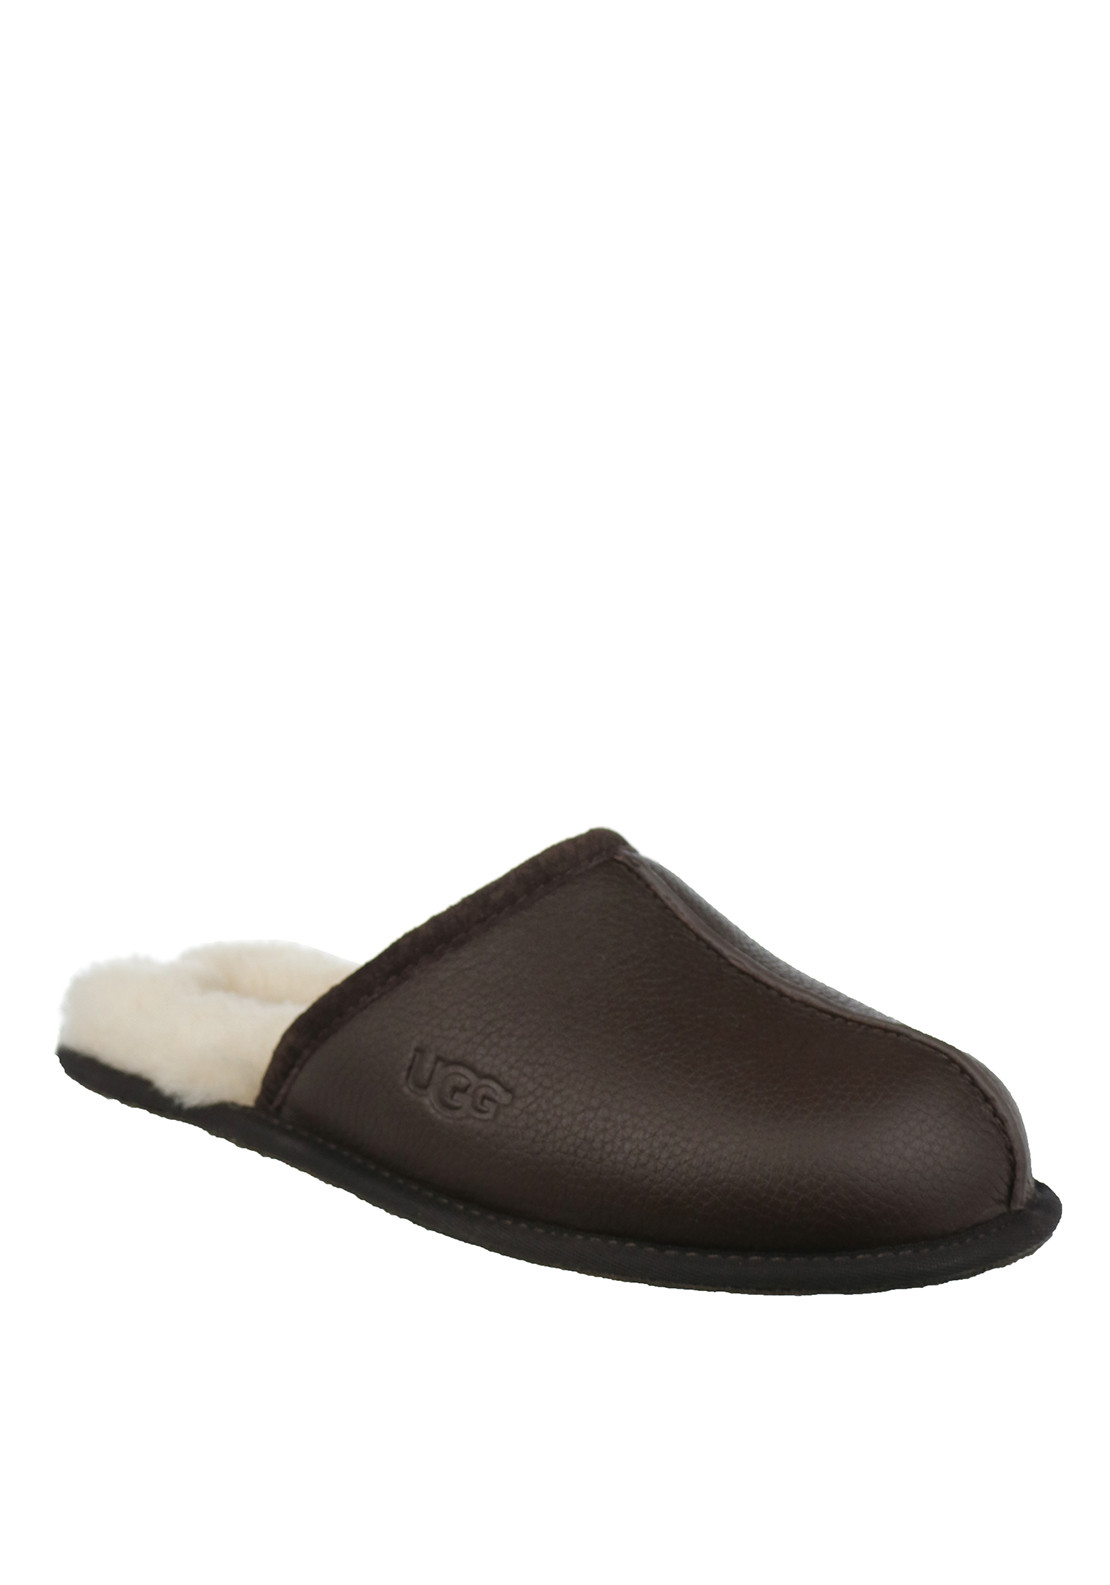 94692012b3f Ugg Australia Mens Scuff Leather Slippers, Stout Brown